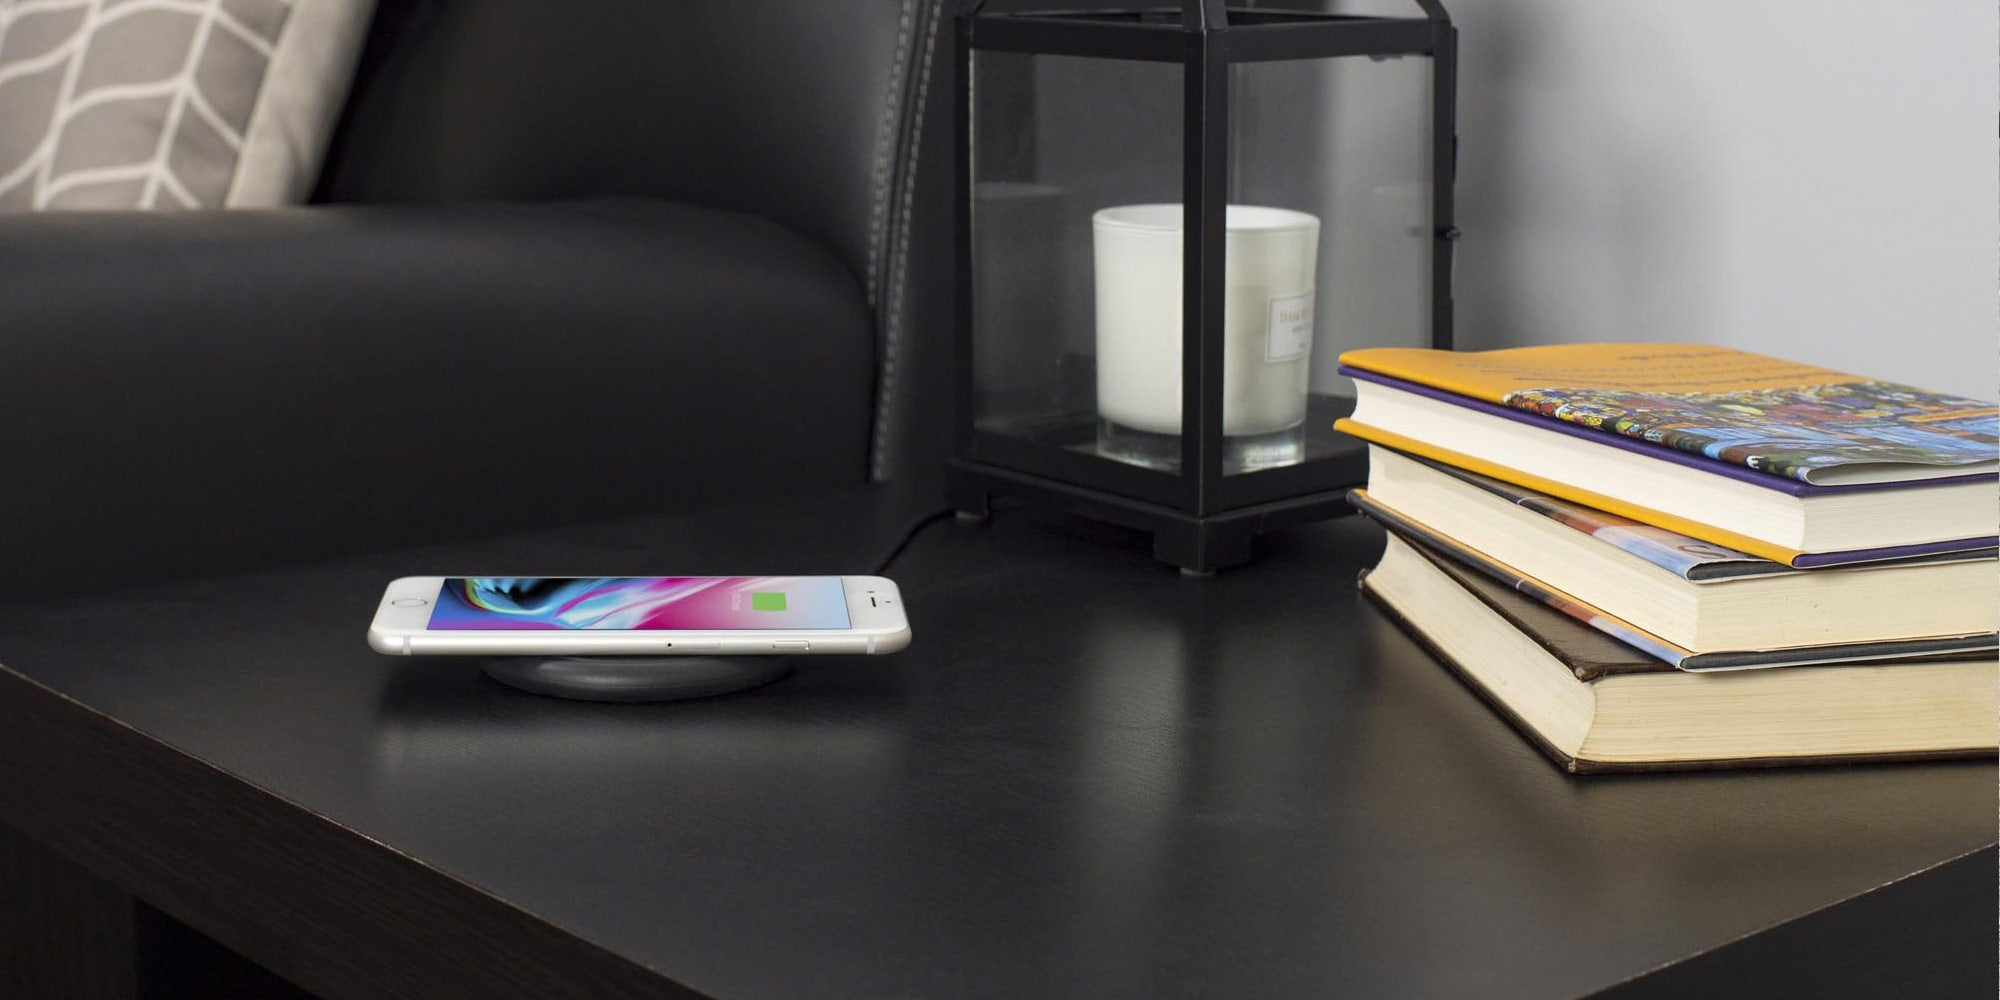 An iPhone charging wirelessly on a mophie charging pad